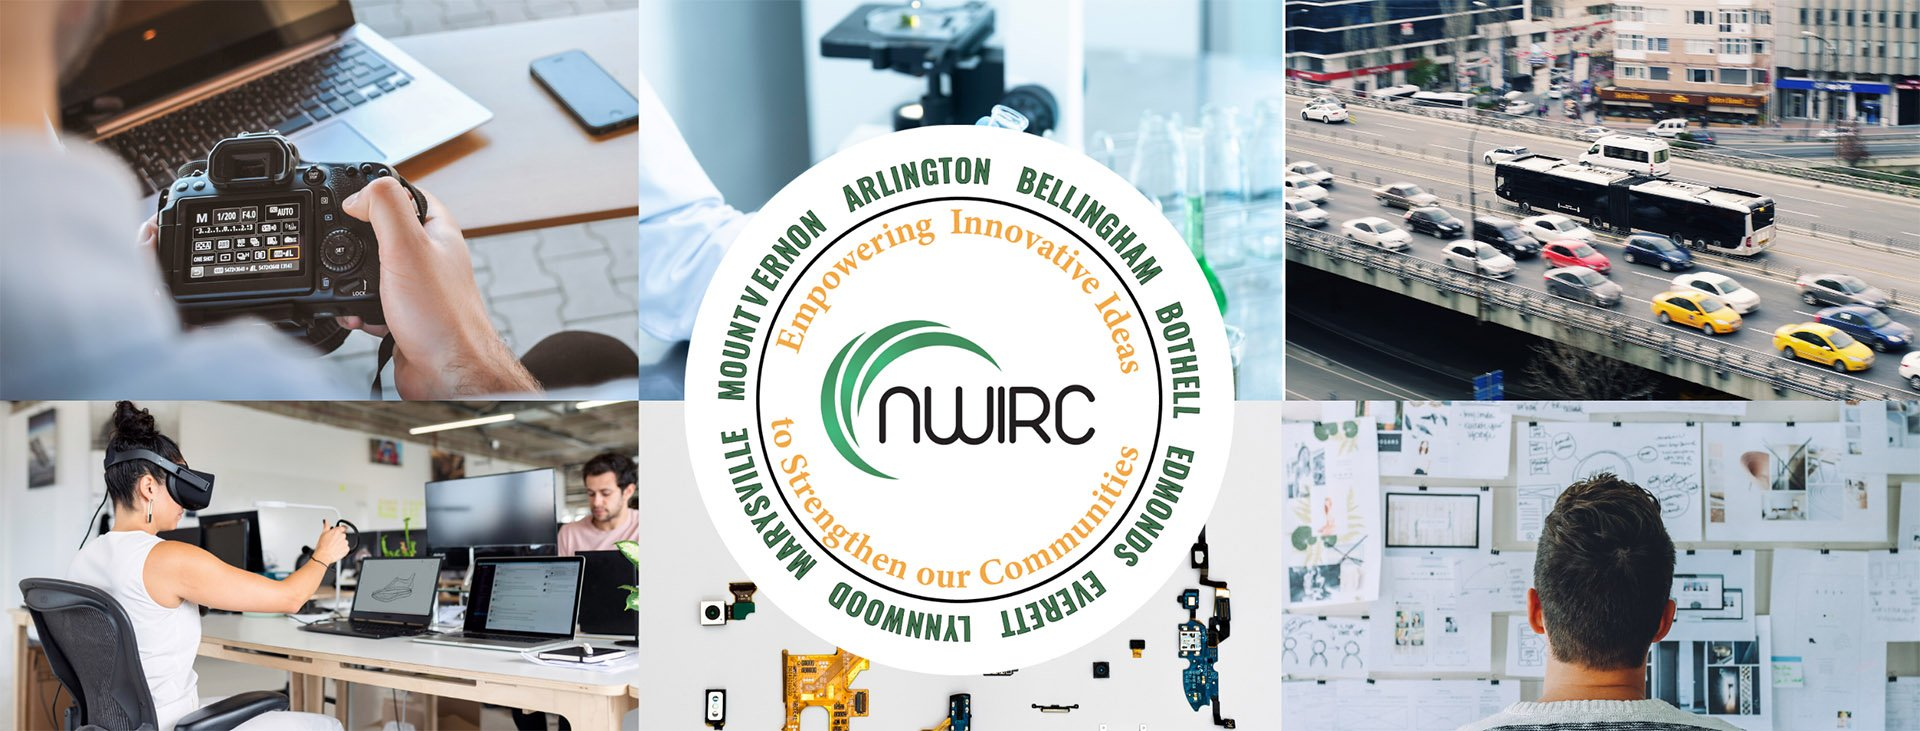 nwirc: empowering innovative ideas to strengthen our communities